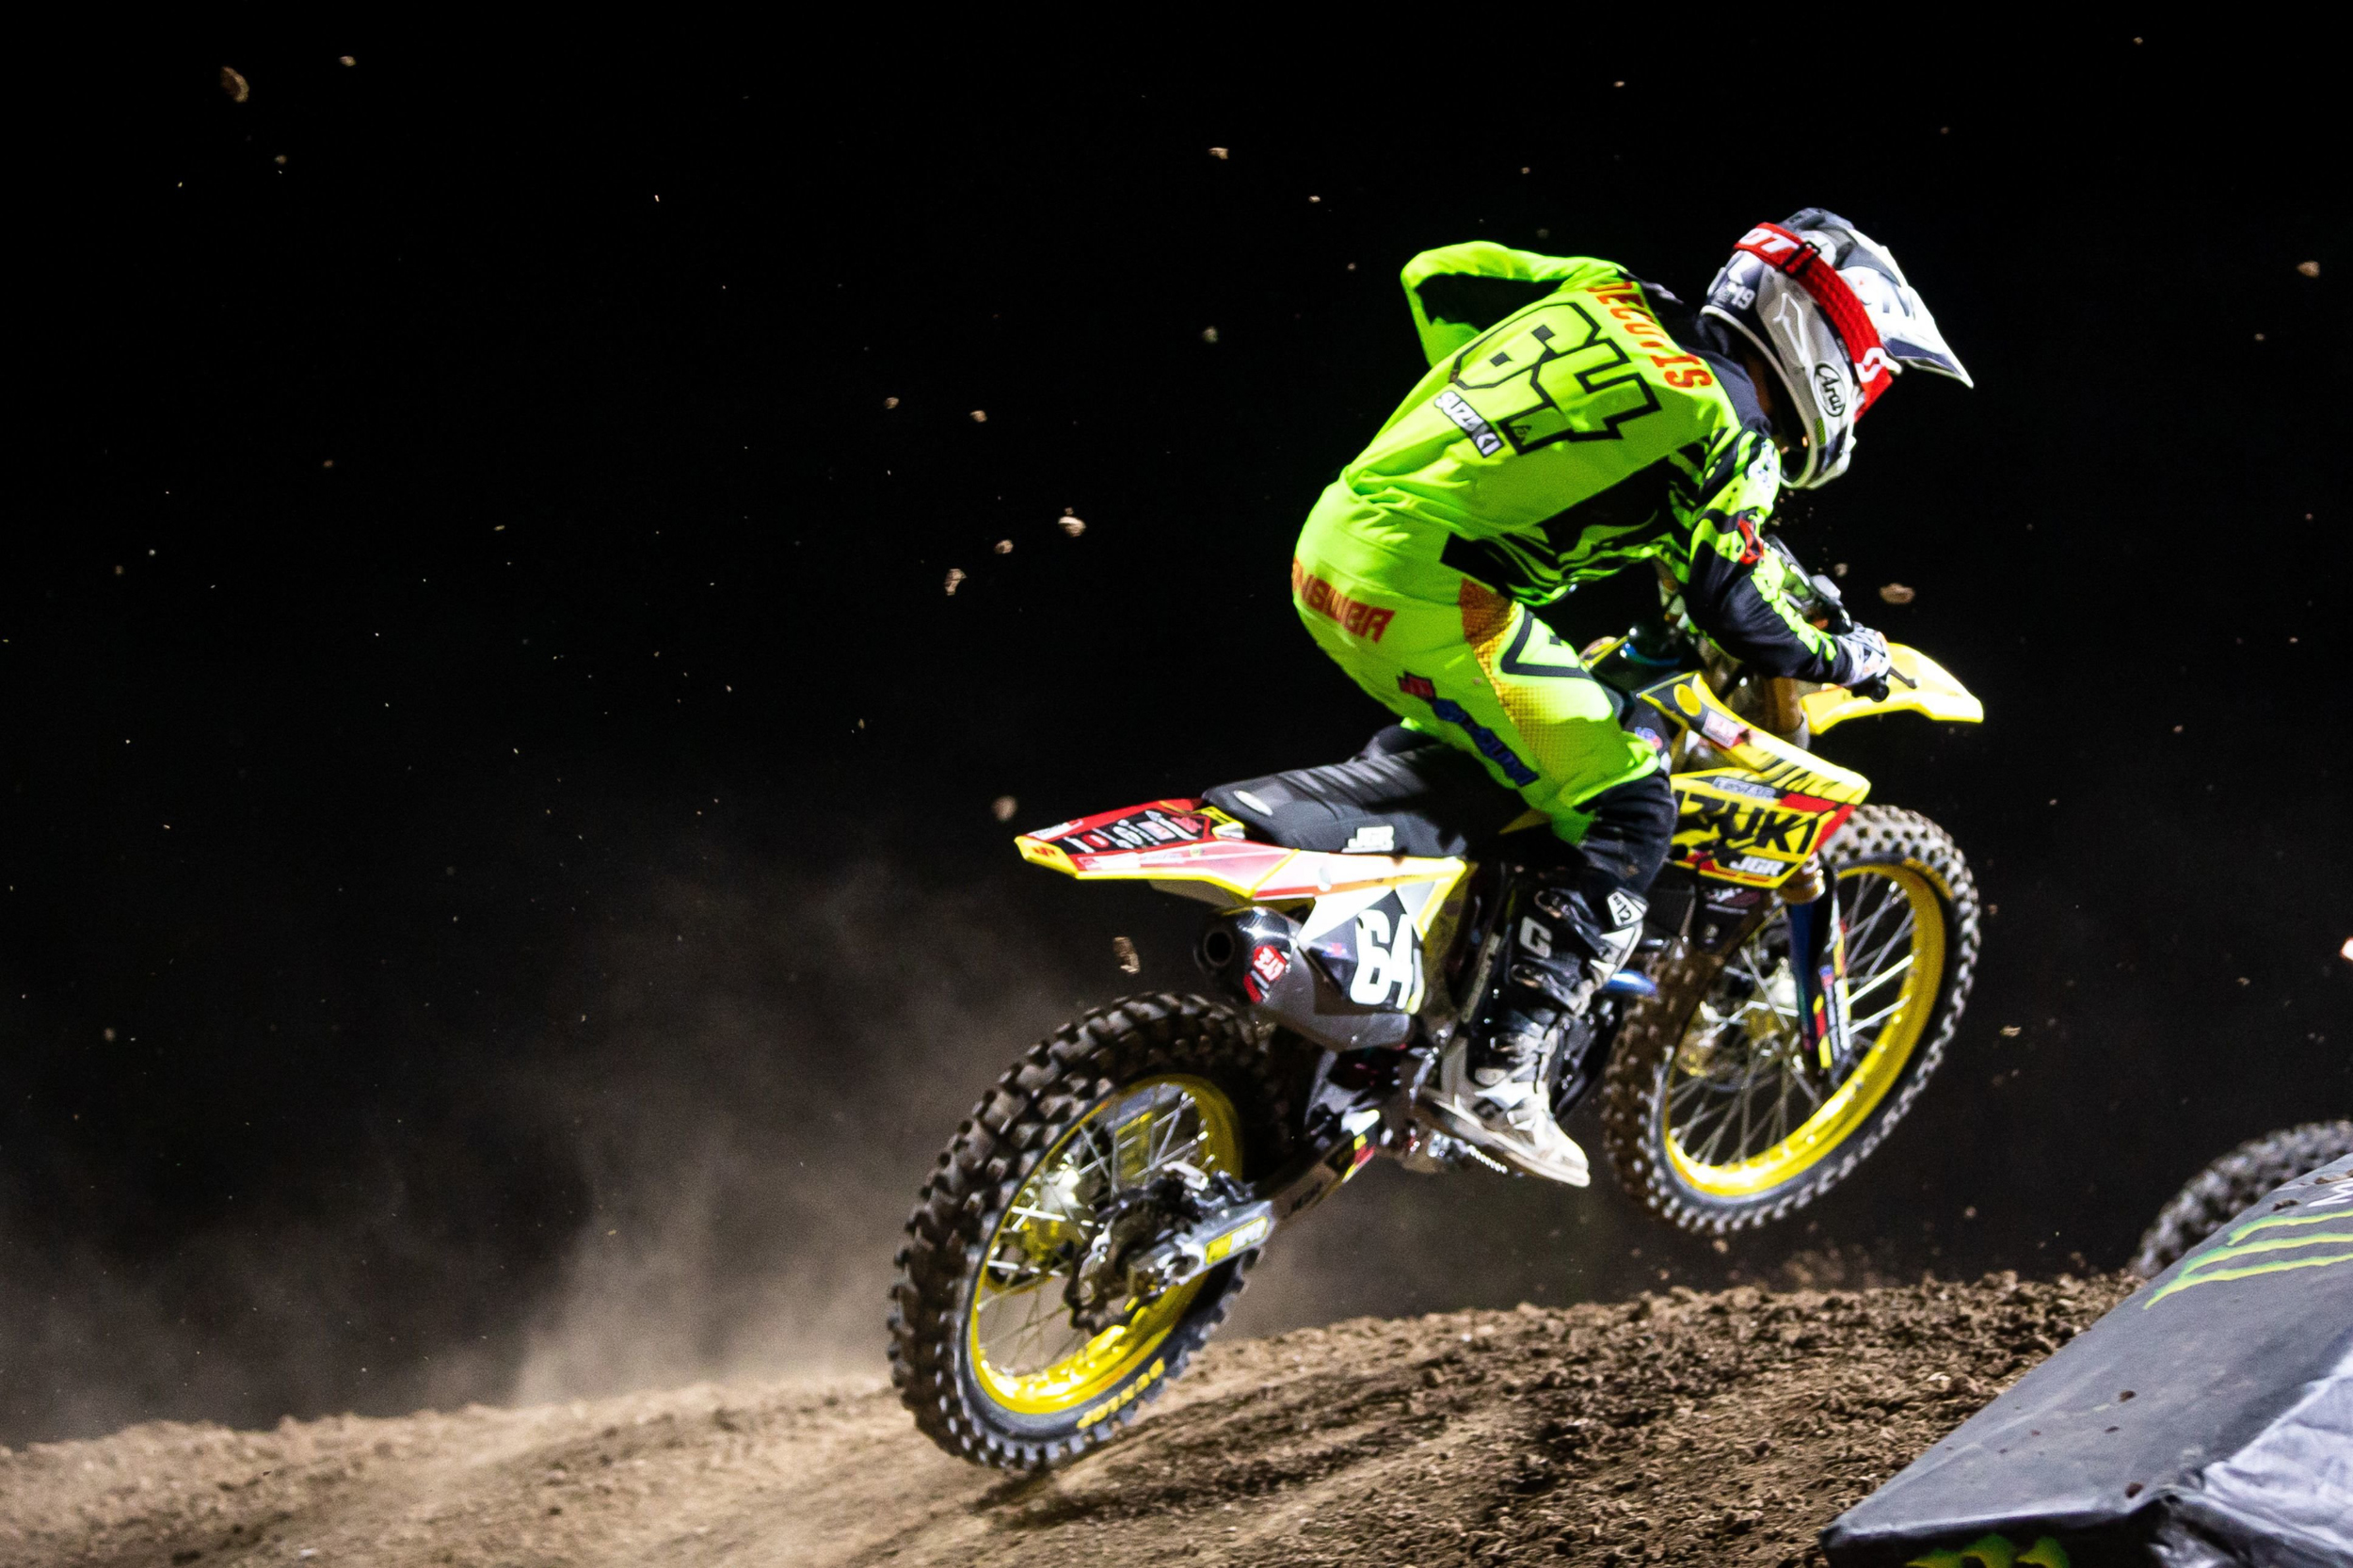 Jimmy Decotis (#64) tackled the Vegas track for his final race of the series - Las Vegas - Monster Energy Supercross